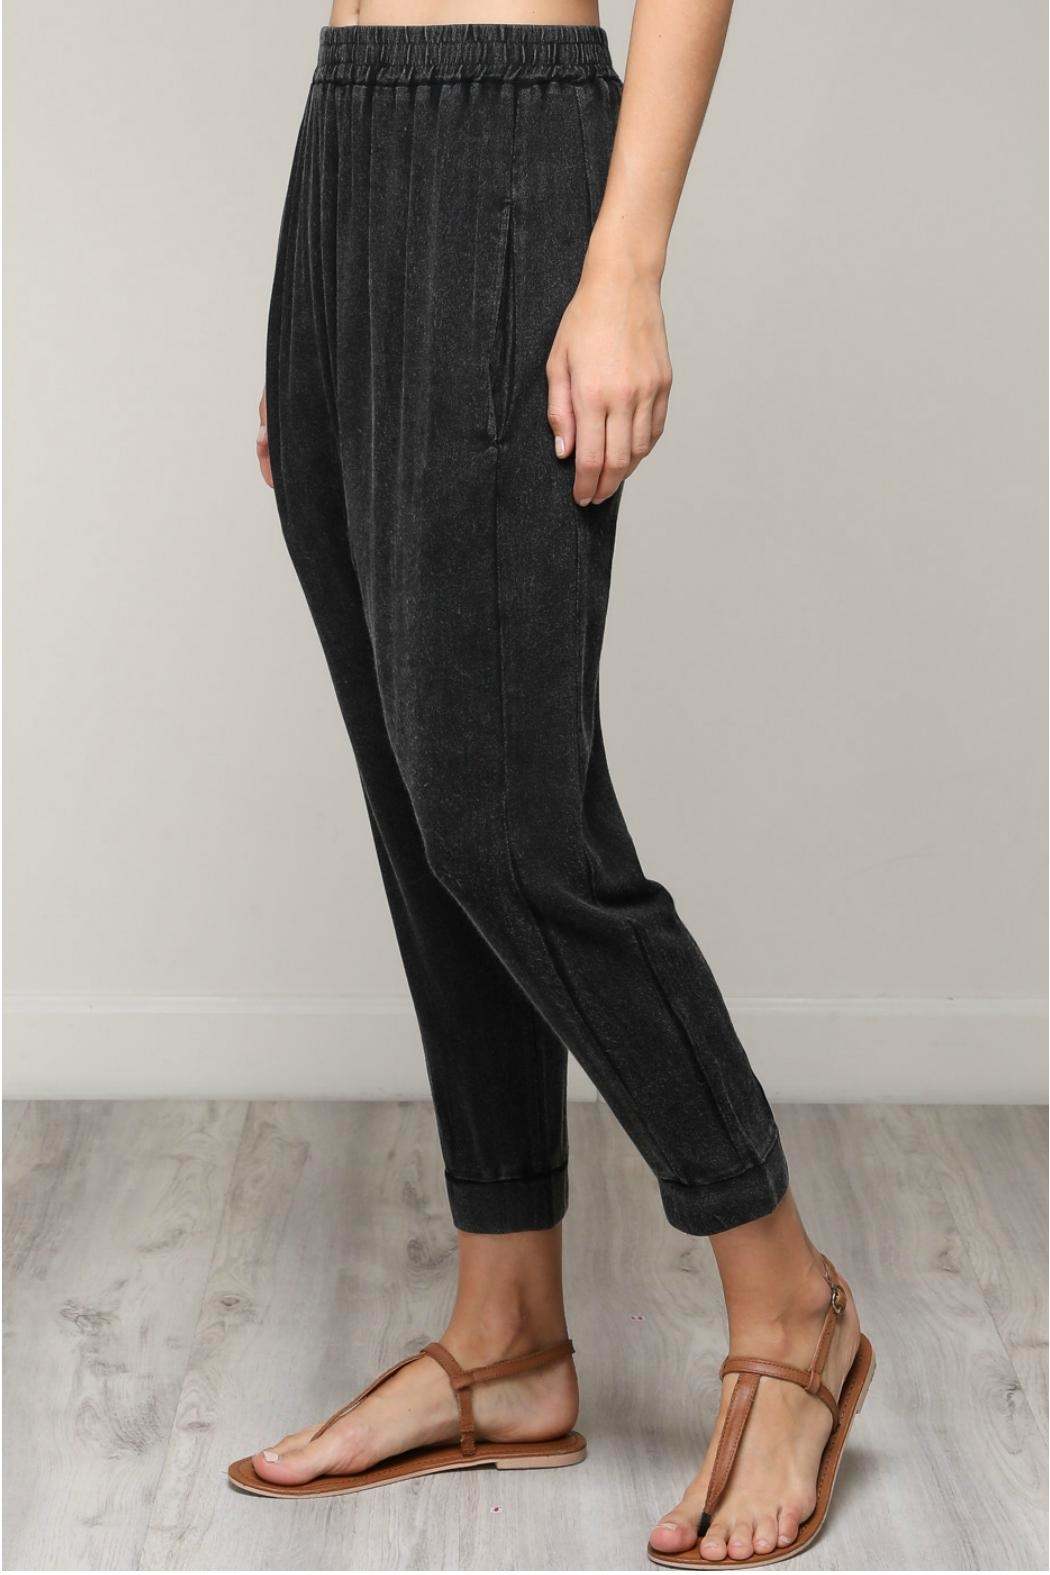 Mustard Seed Vintage Woven Pants - Side Cropped Image